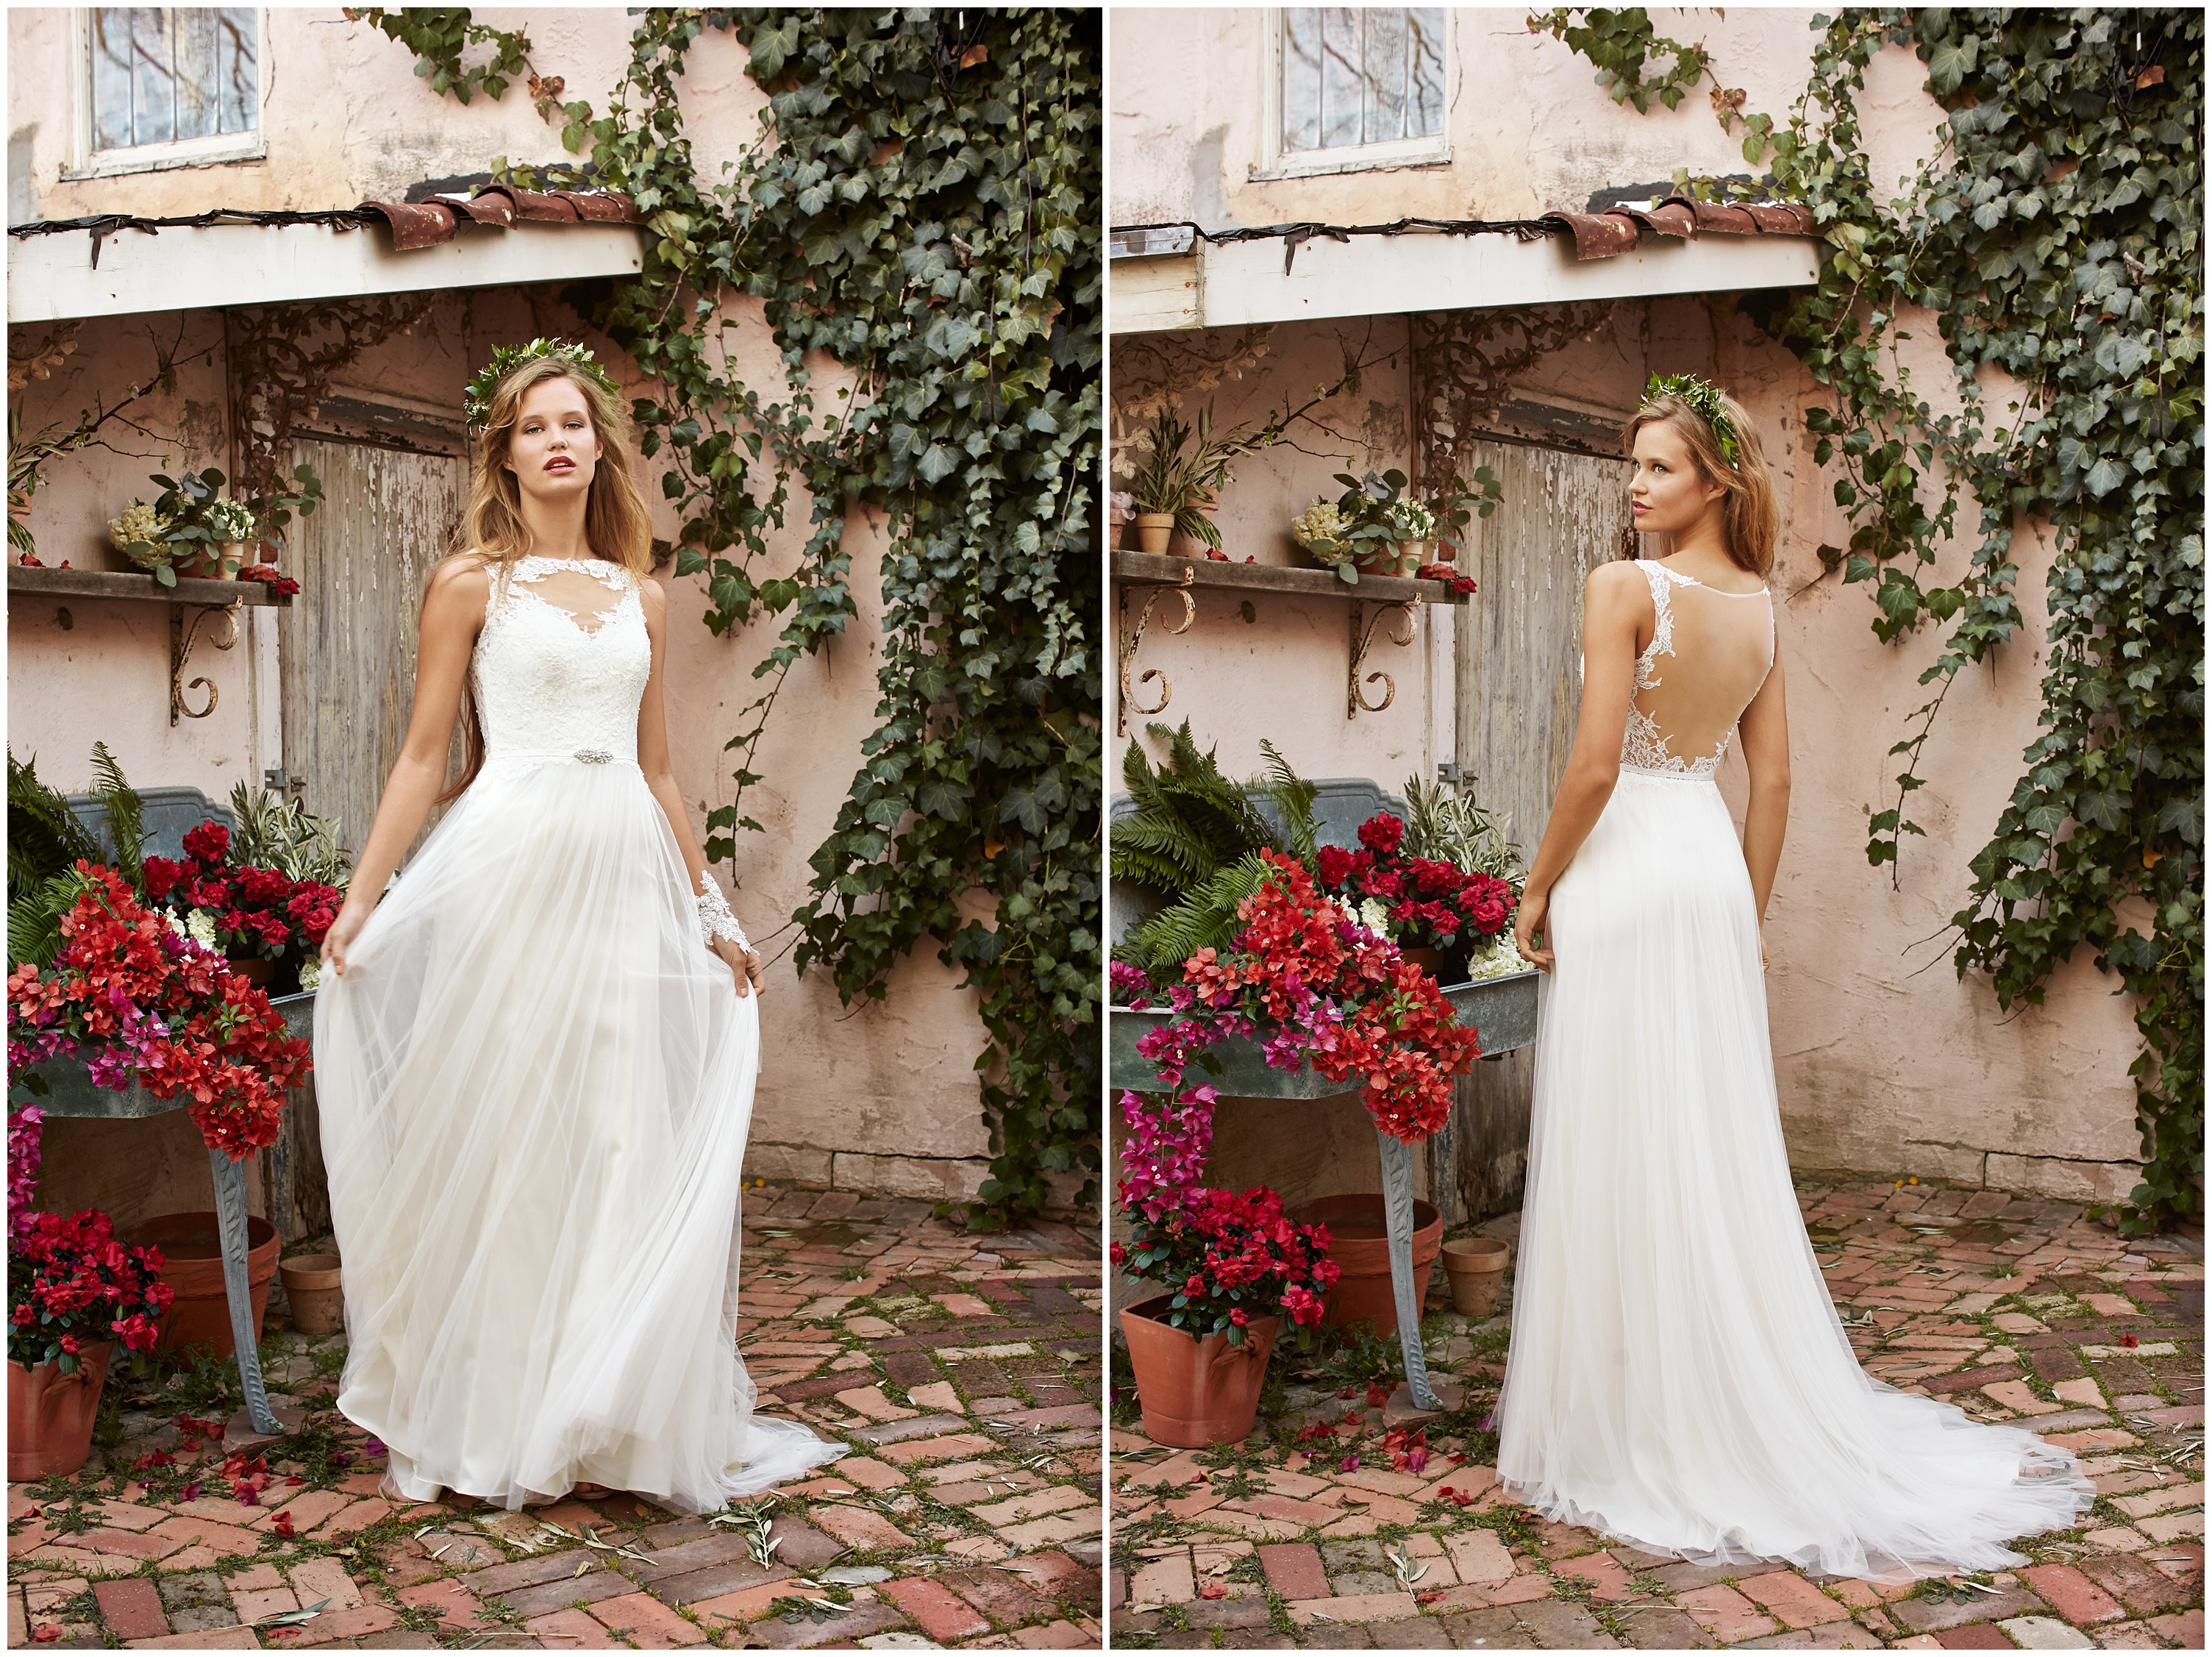 Wedding Inspiration: Watters introduces Love Marley